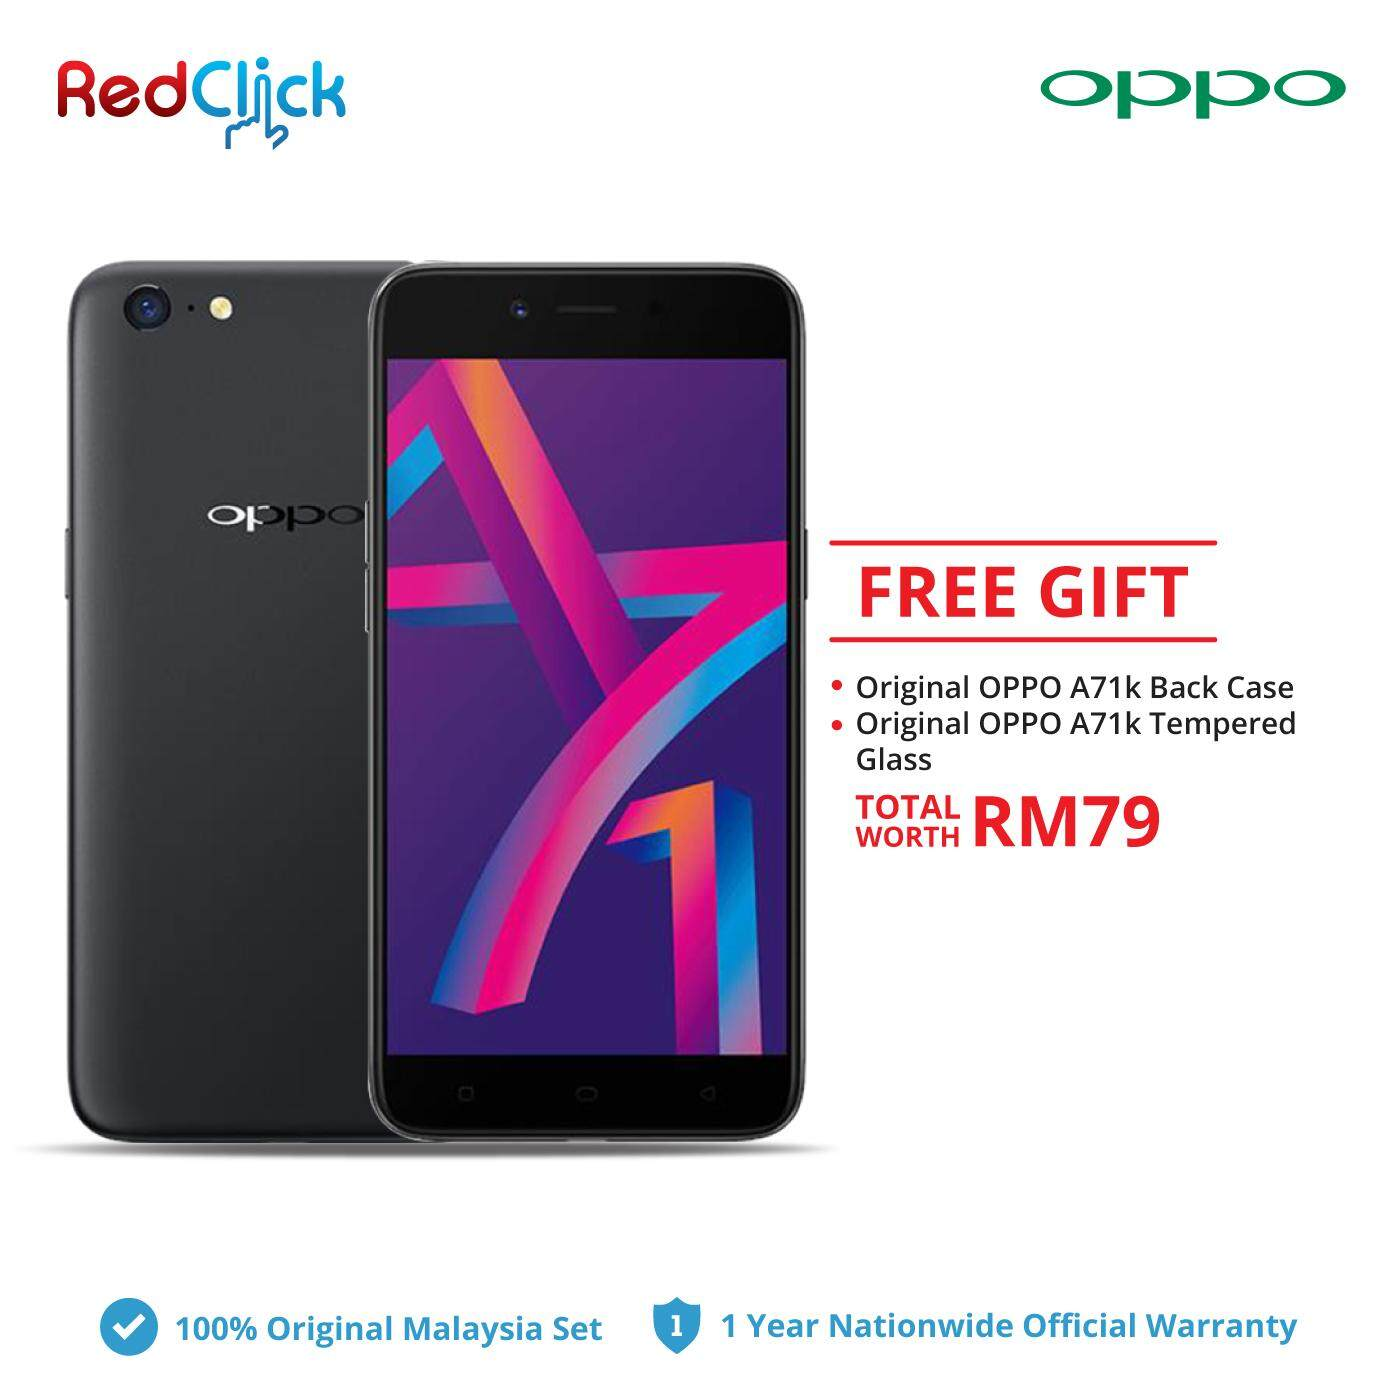 Oppo A71k Cph1801 2gb 16gb 2 Free Gift Worth Rm 79 Malaysia A3s